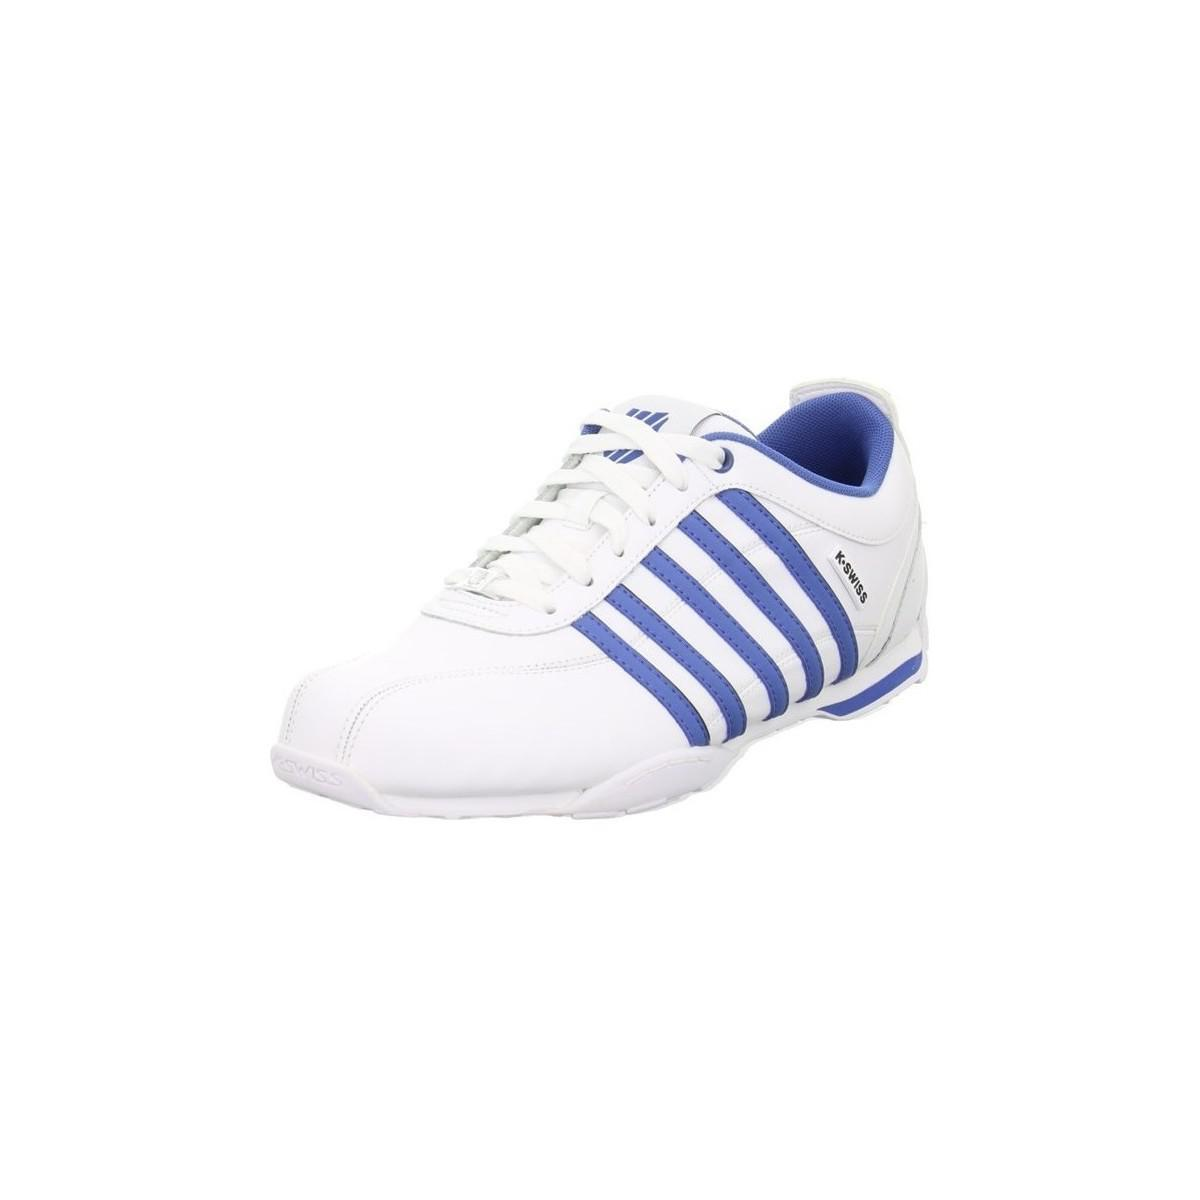 k swiss arvee 15 men 39 s shoes trainers in white in white for men lyst. Black Bedroom Furniture Sets. Home Design Ideas